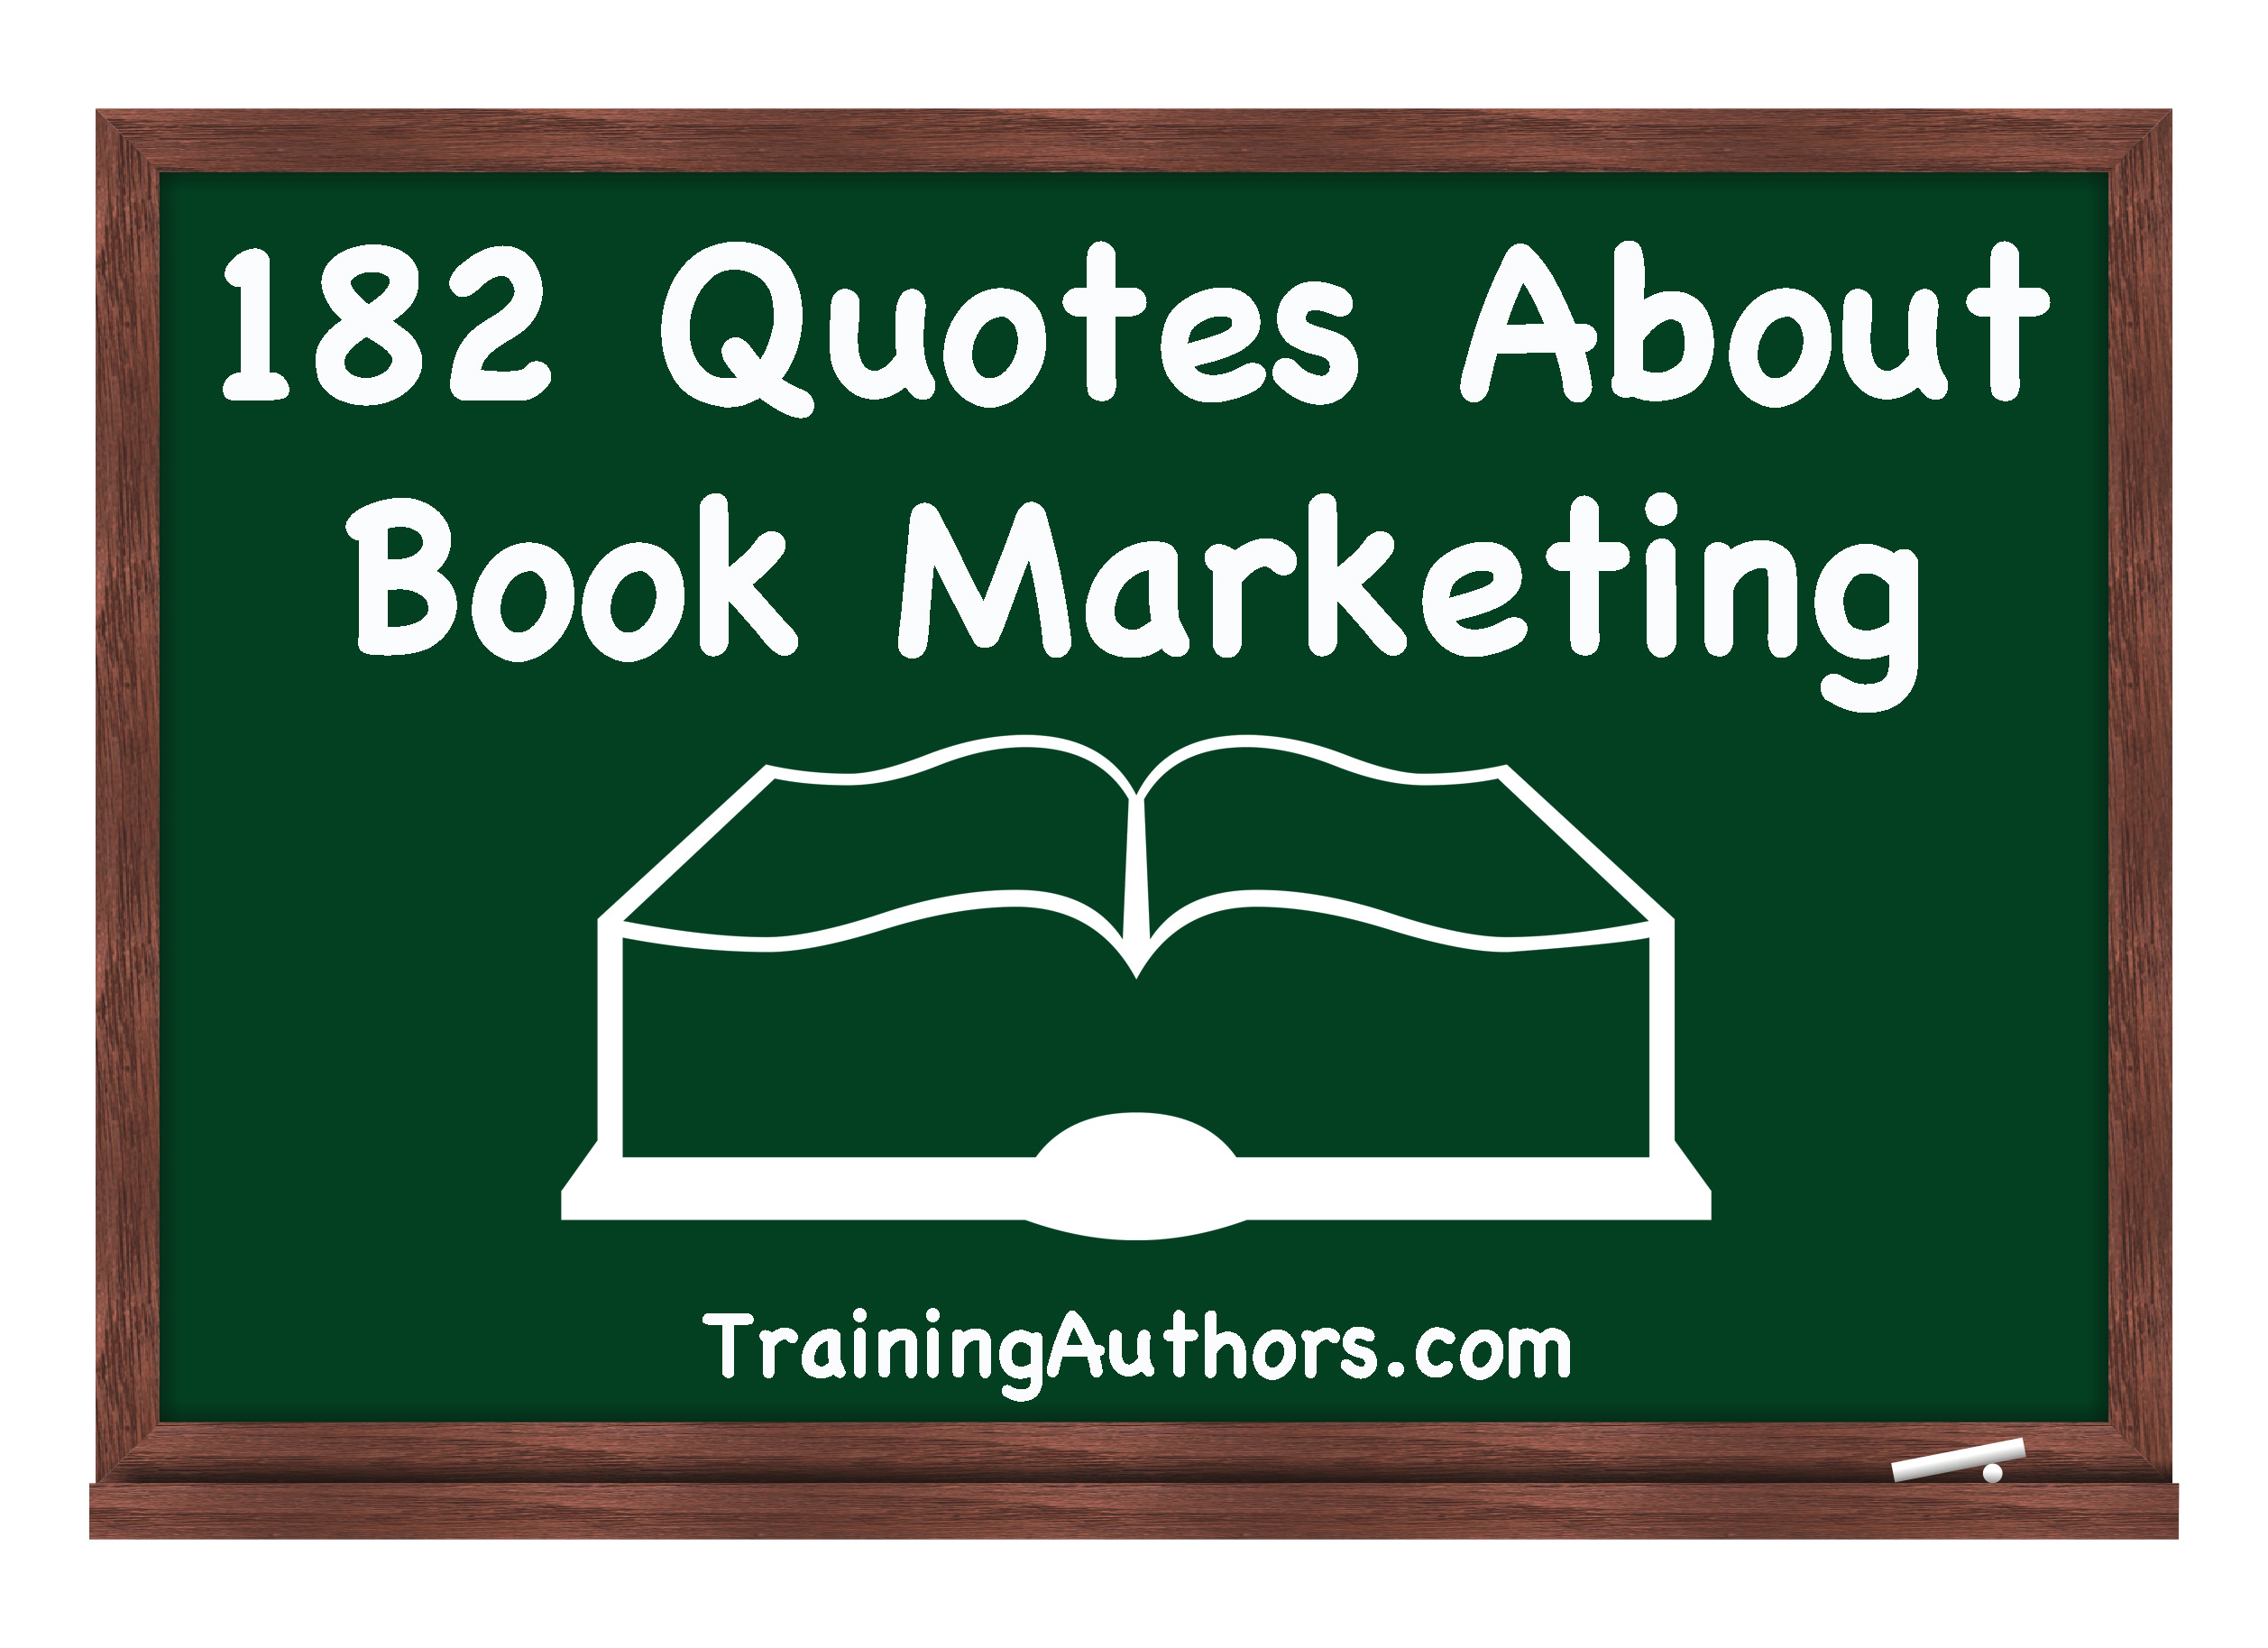 Dress For Success Quotes 182 Quotes About Book Marketing  Training Authors For Success